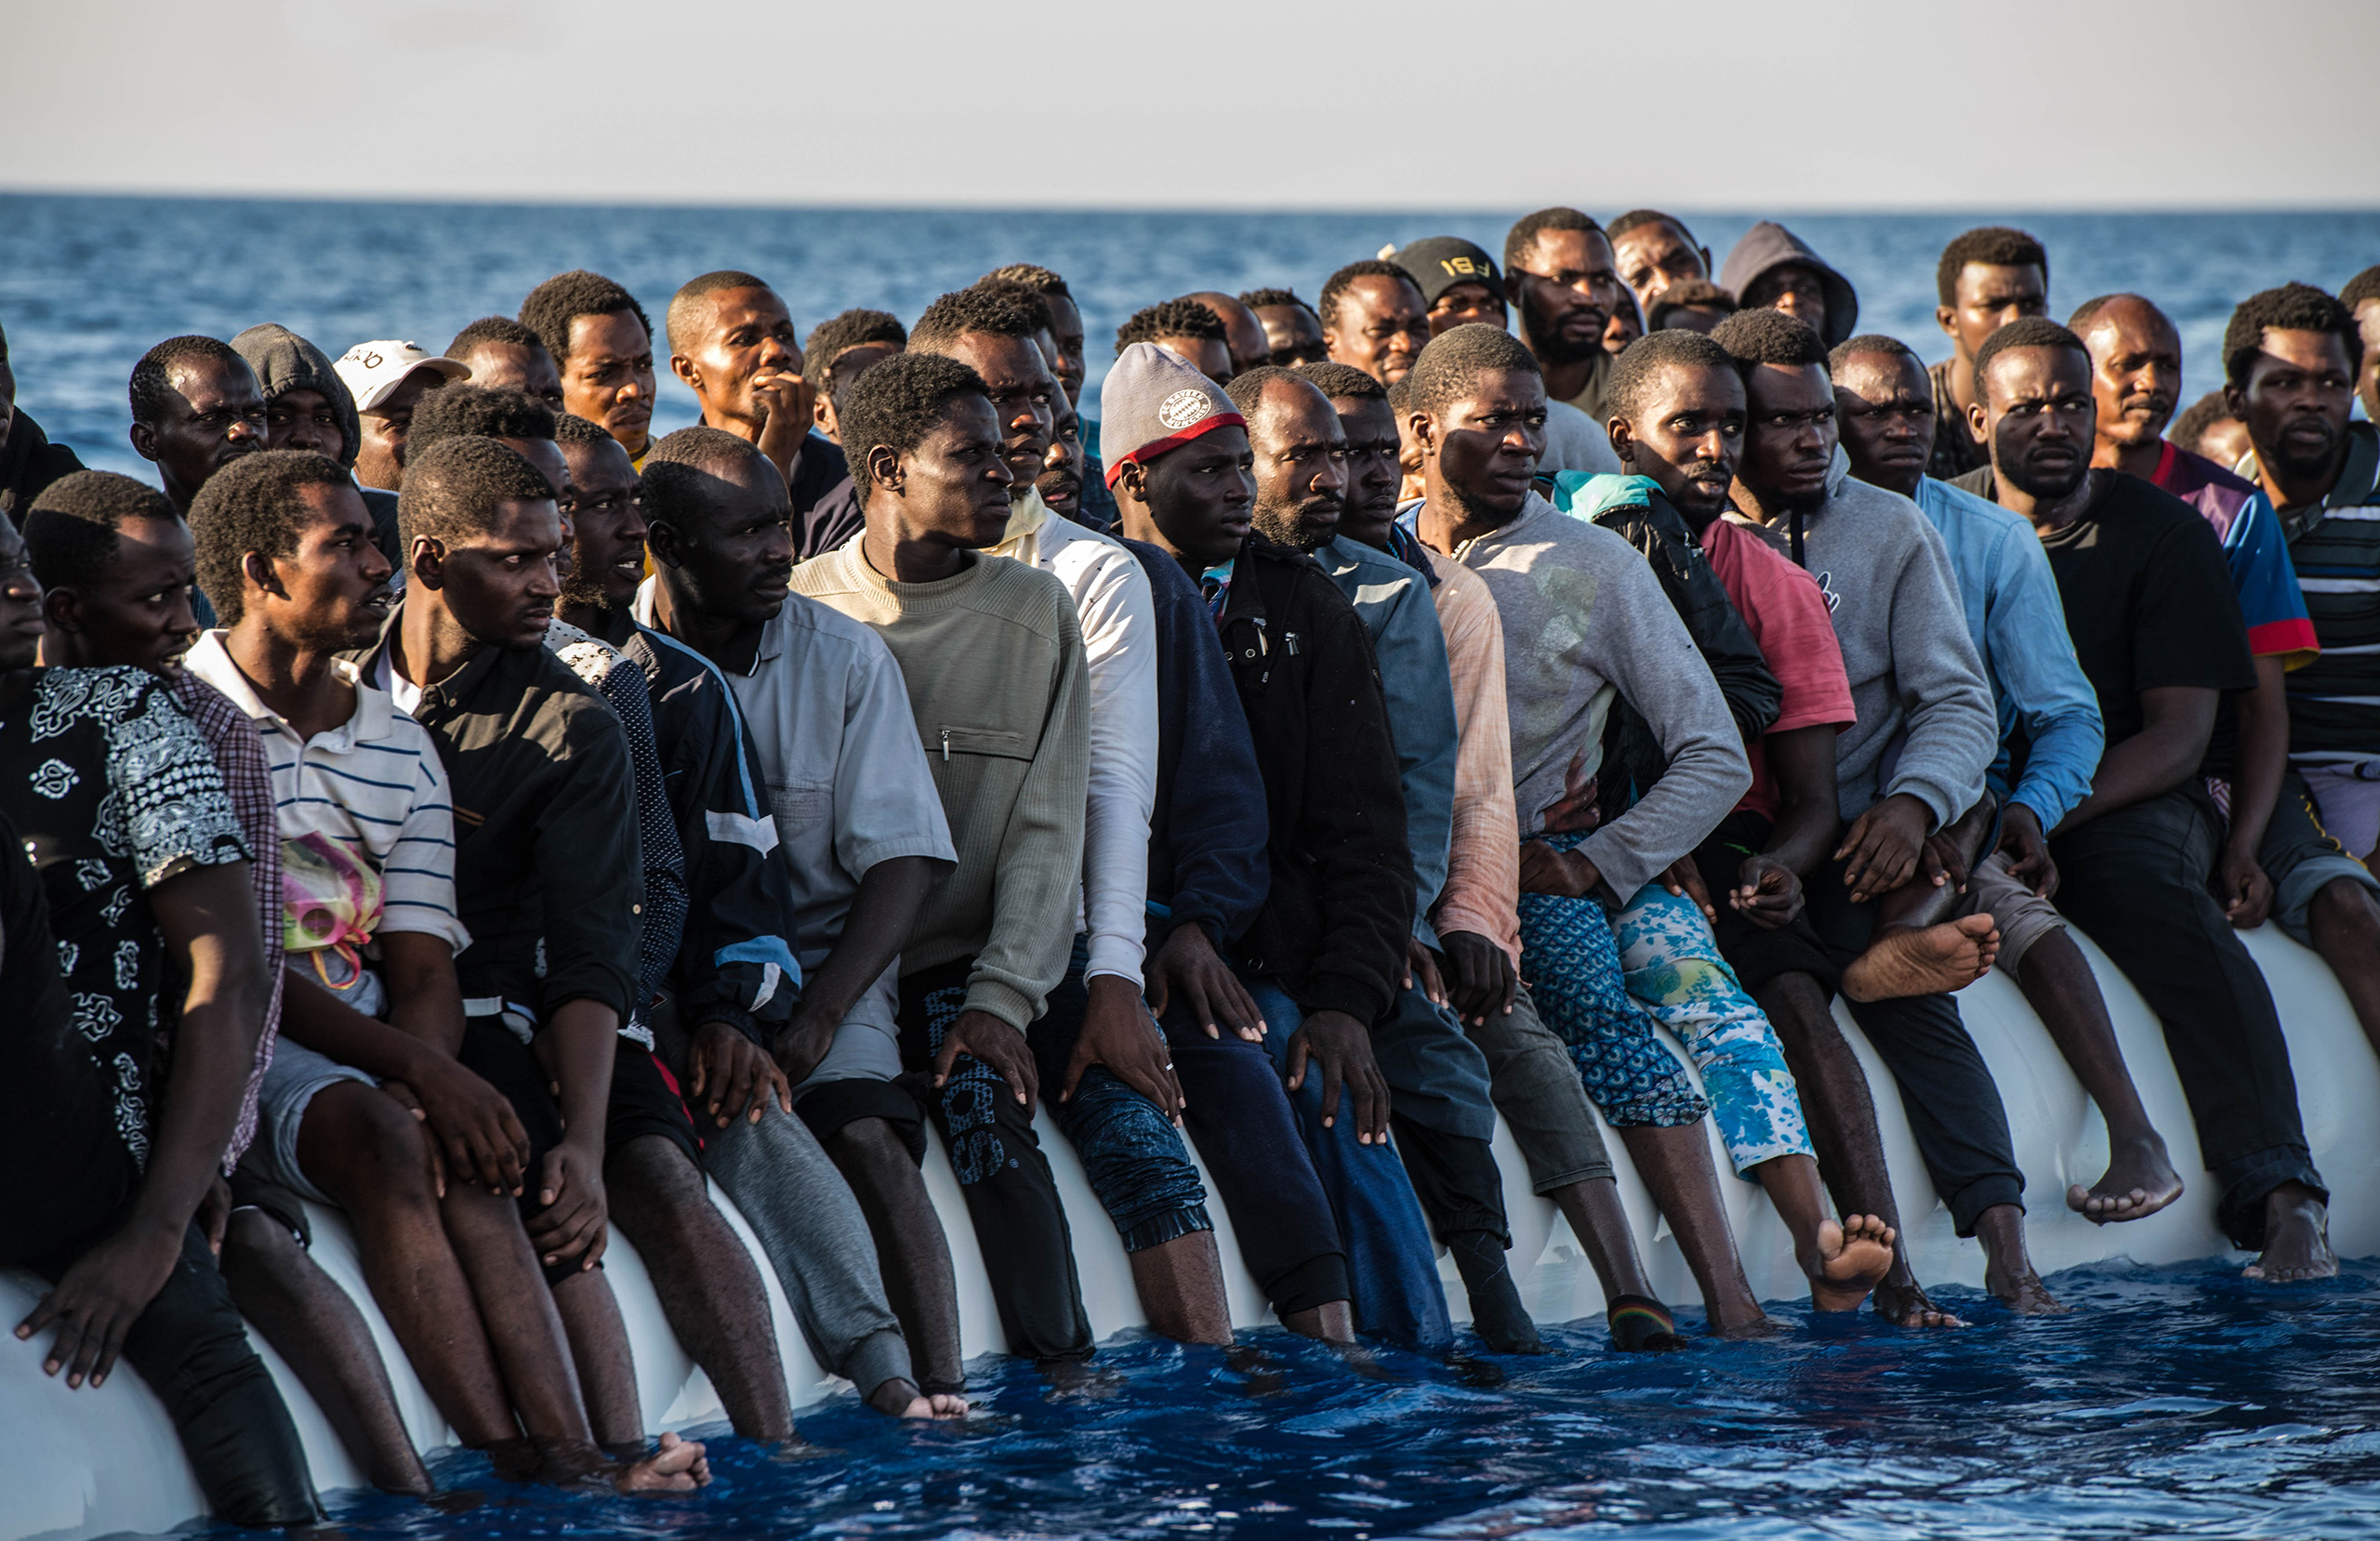 Migrants on the rubber boat in Mediterranean are rescued, Aug. 20, 2016.